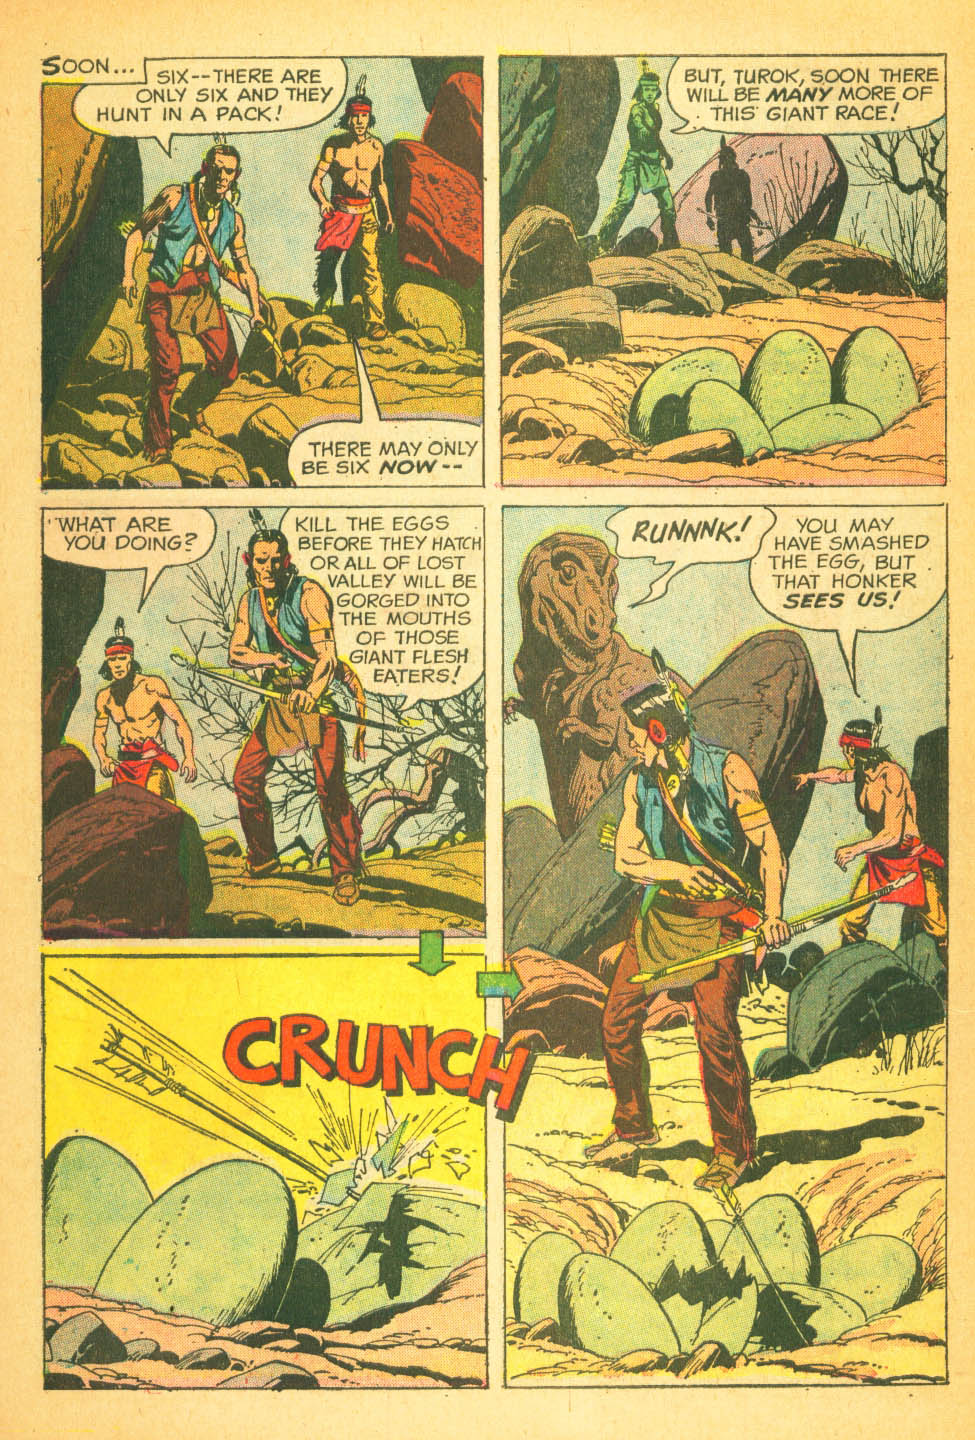 Read online Turok, Son of Stone comic -  Issue #27 - 27